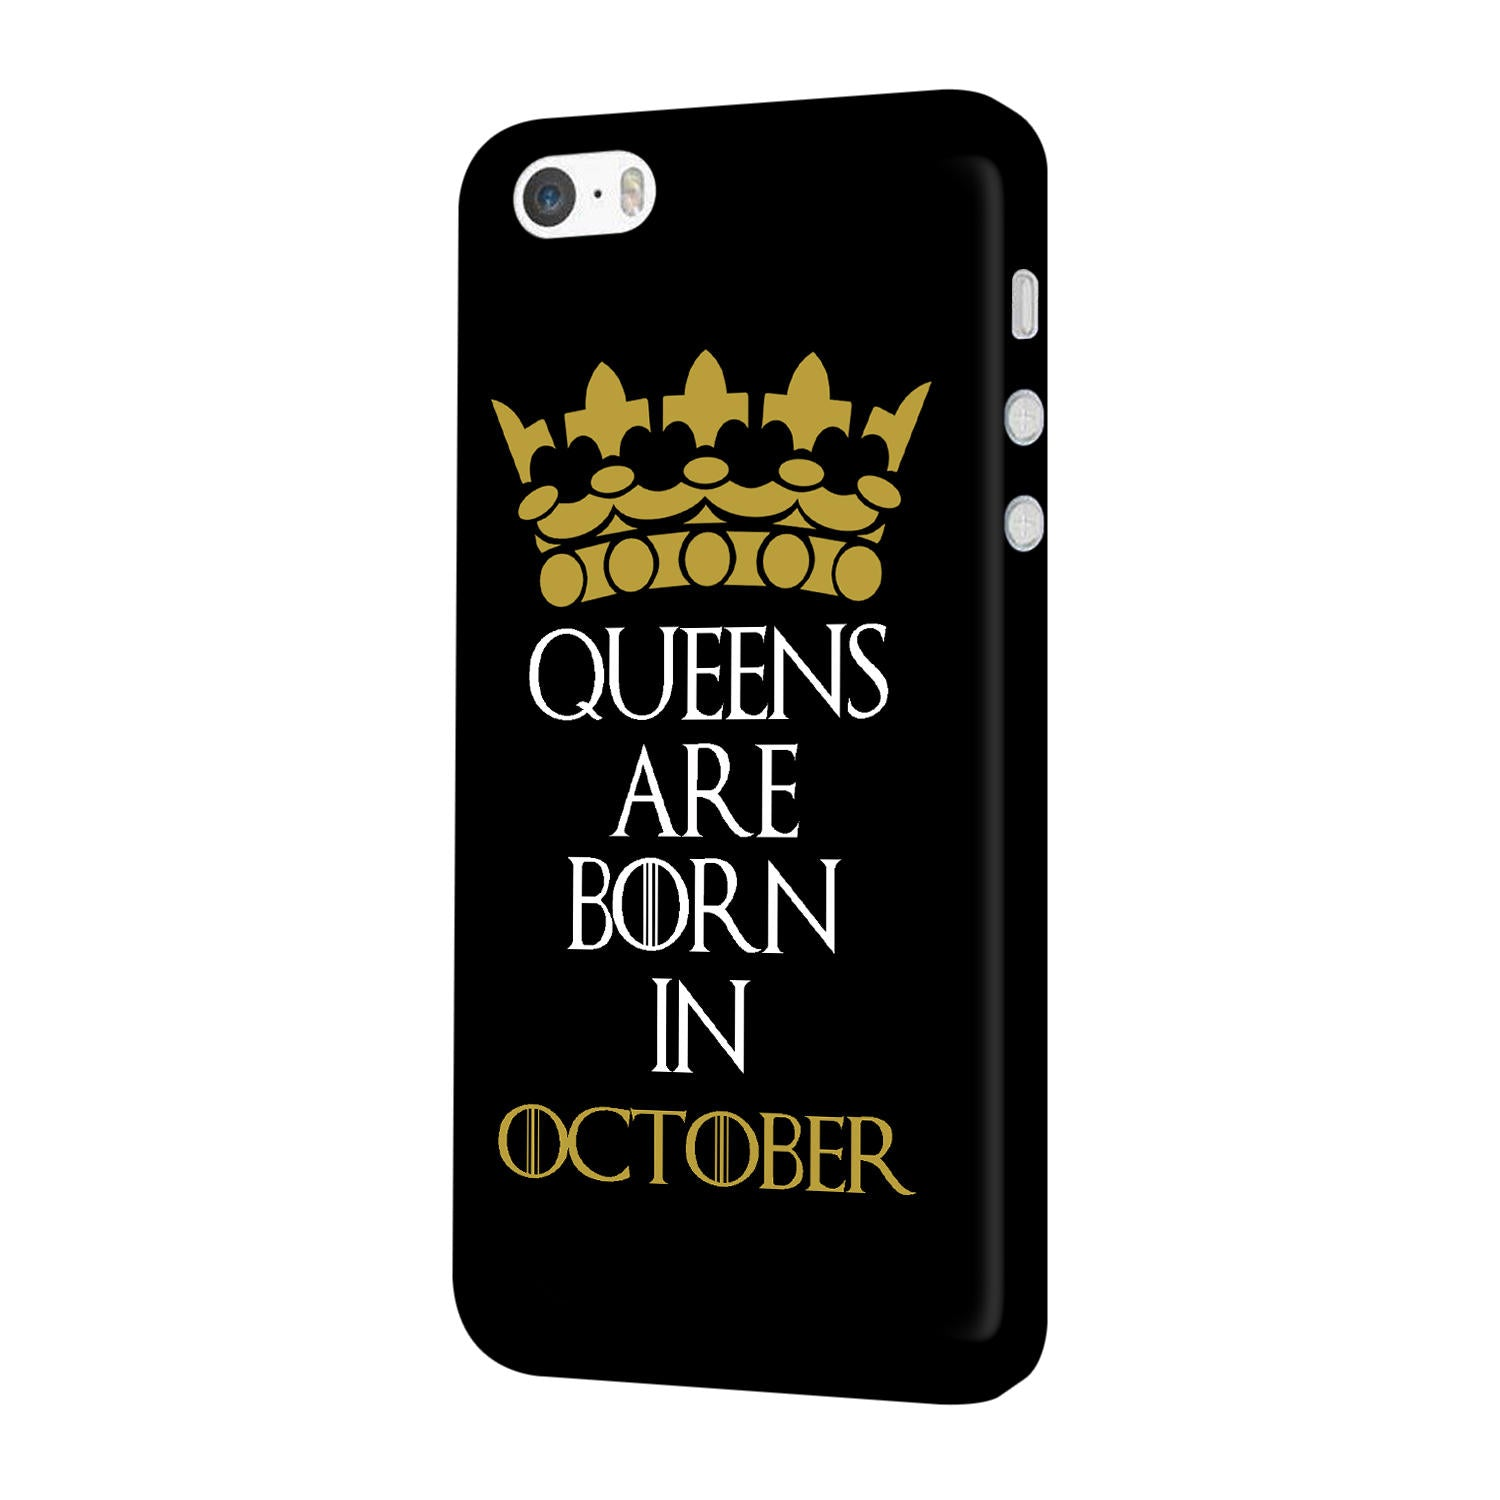 Queens October iPhone 5 Mobile Cover Case